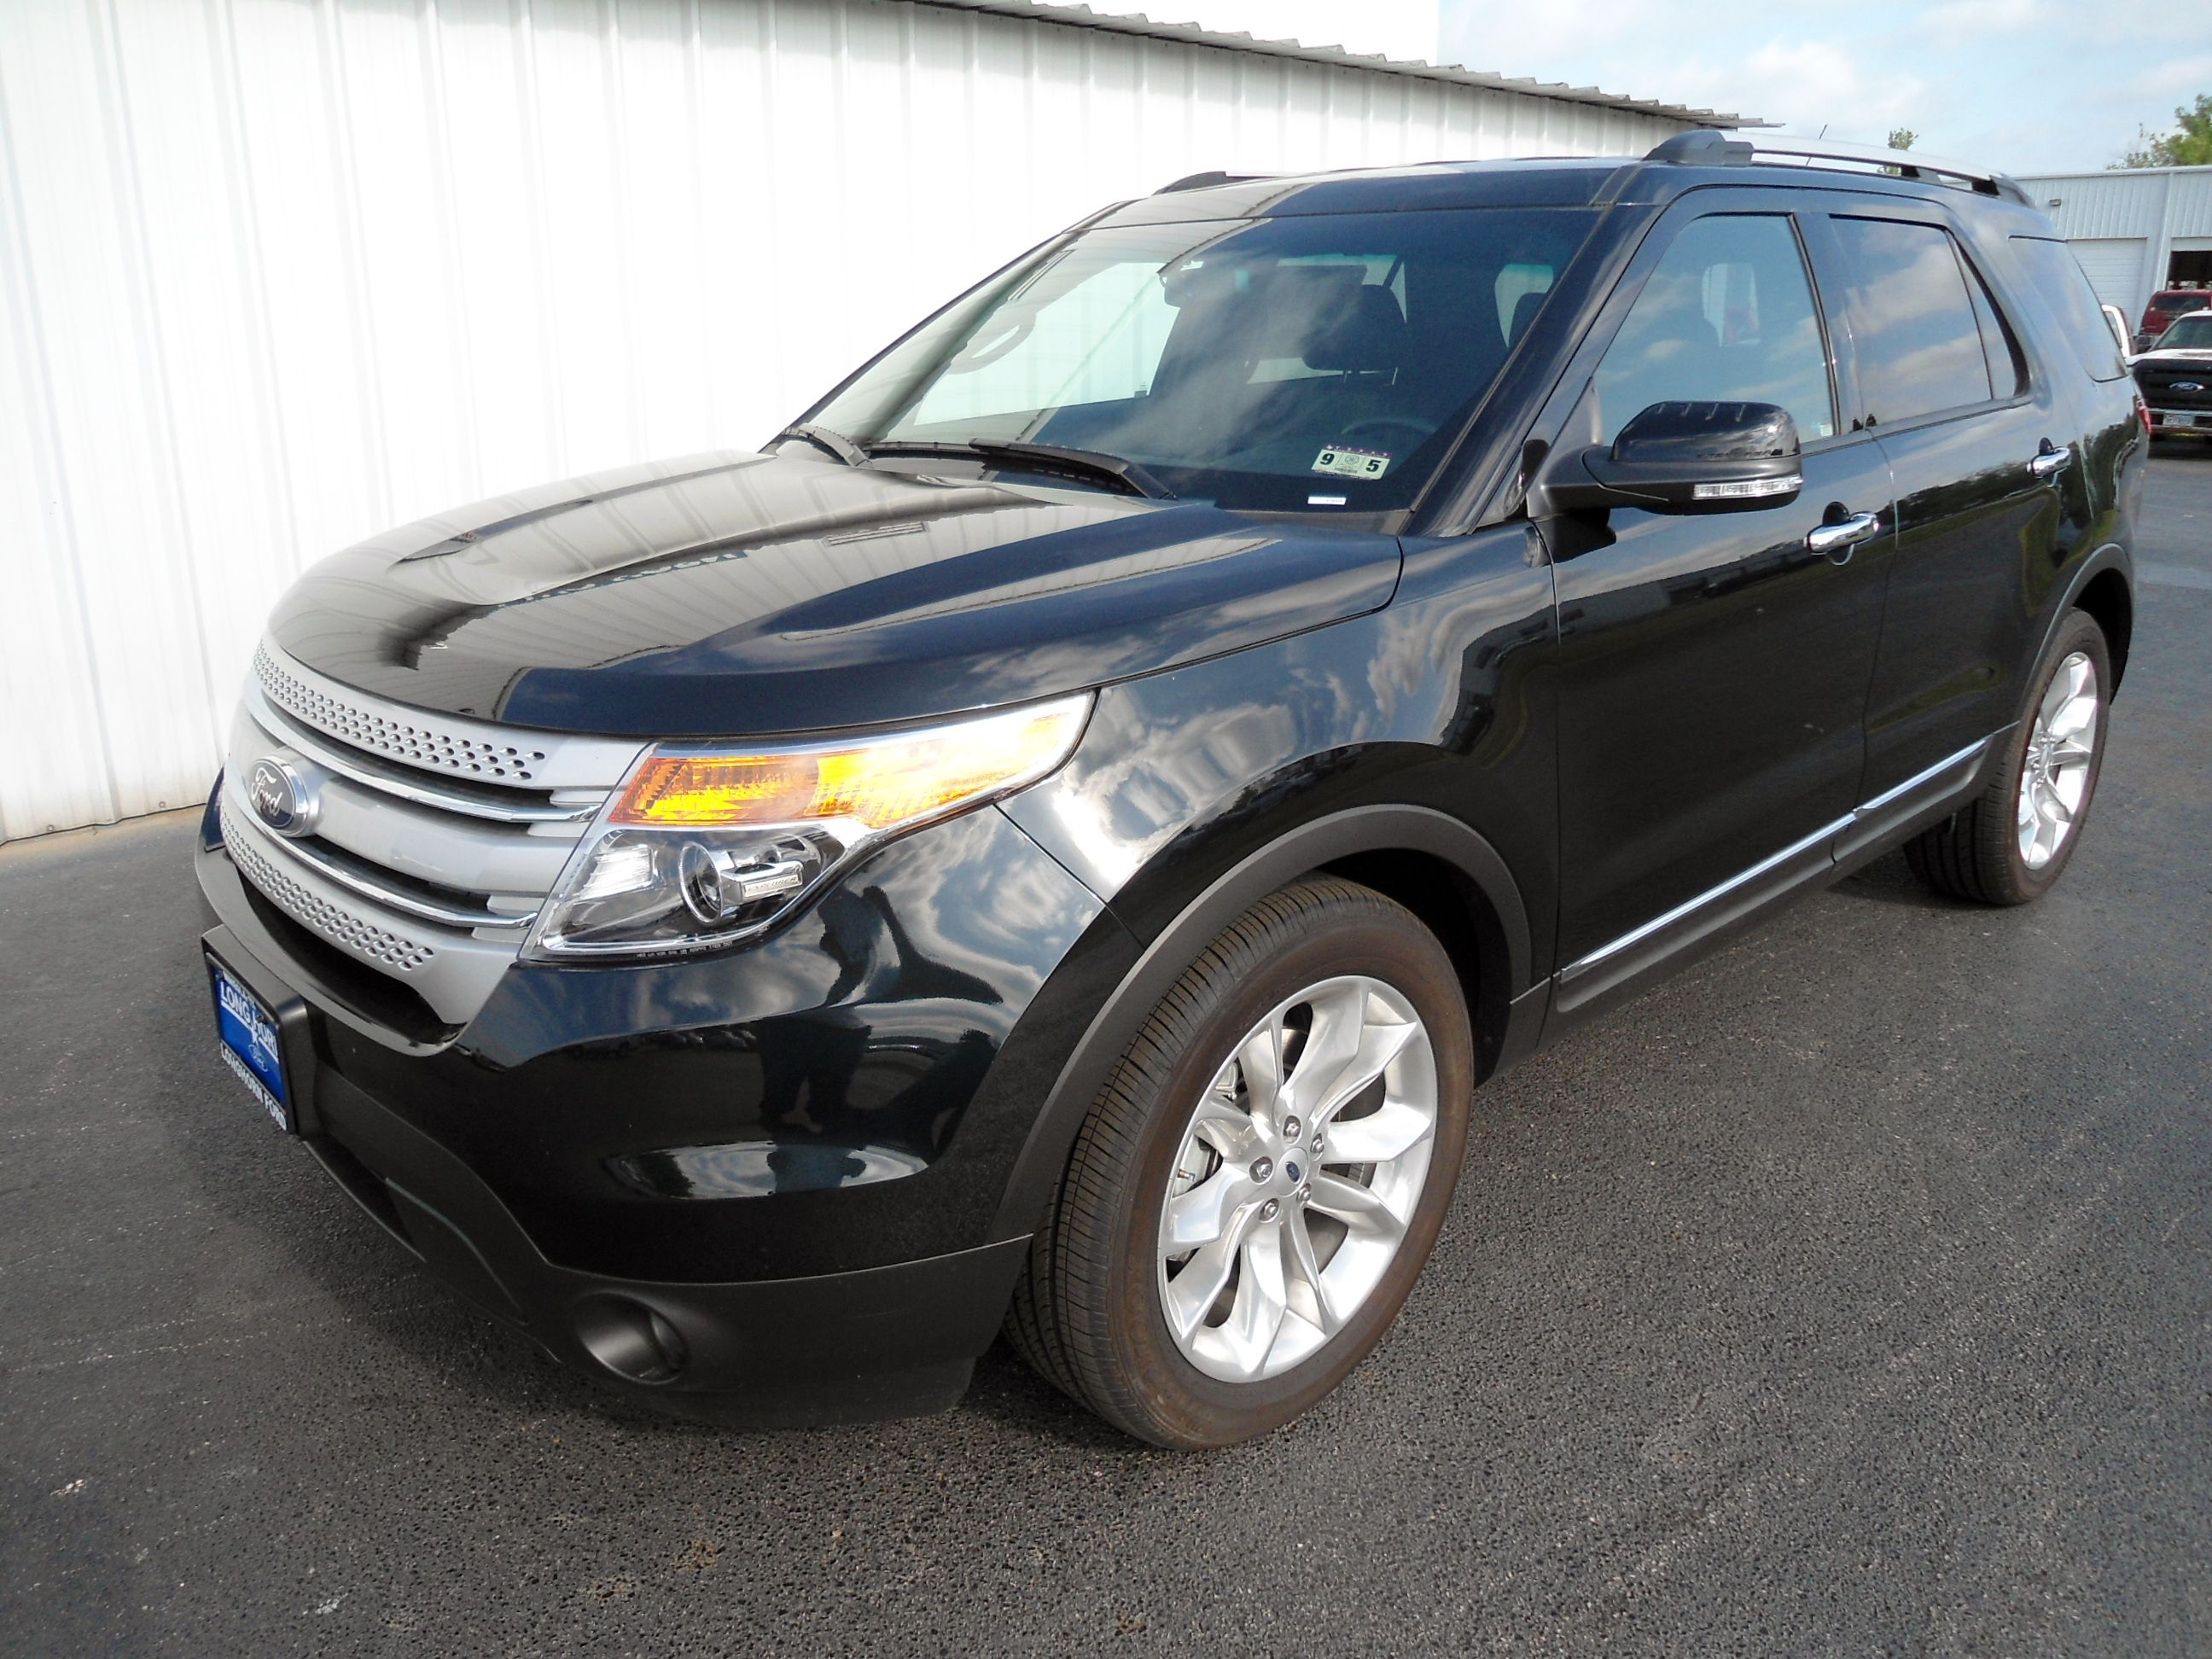 2014 Ford Explorer Xlt With 20 Inch Polished Aluminum Wheels